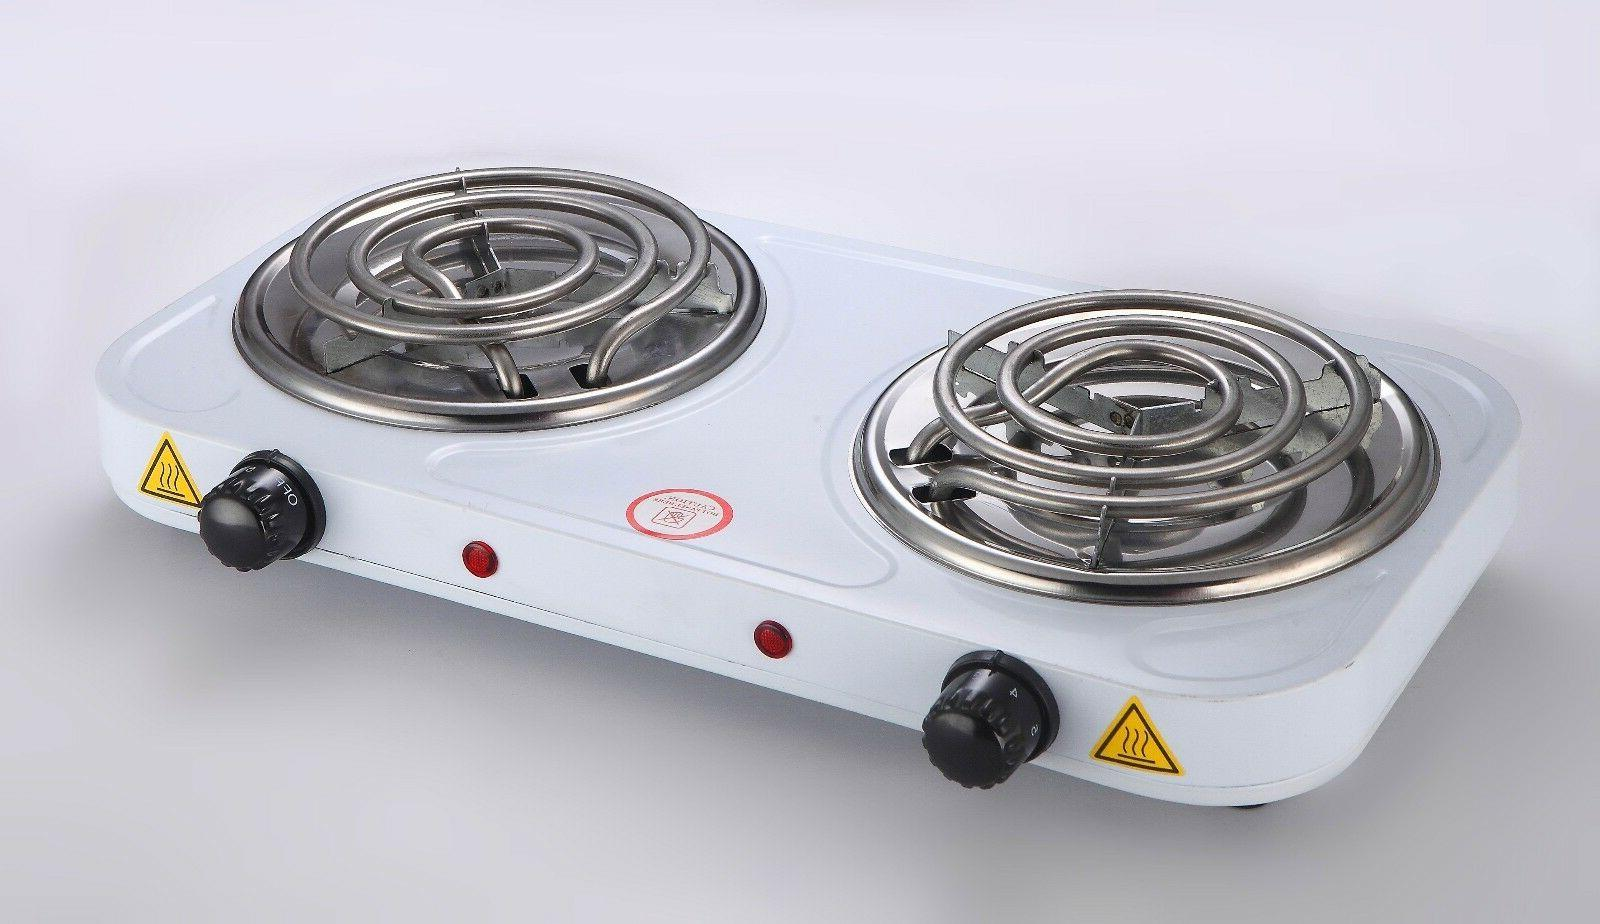 cookmaster electric double burner portable hotplates burners